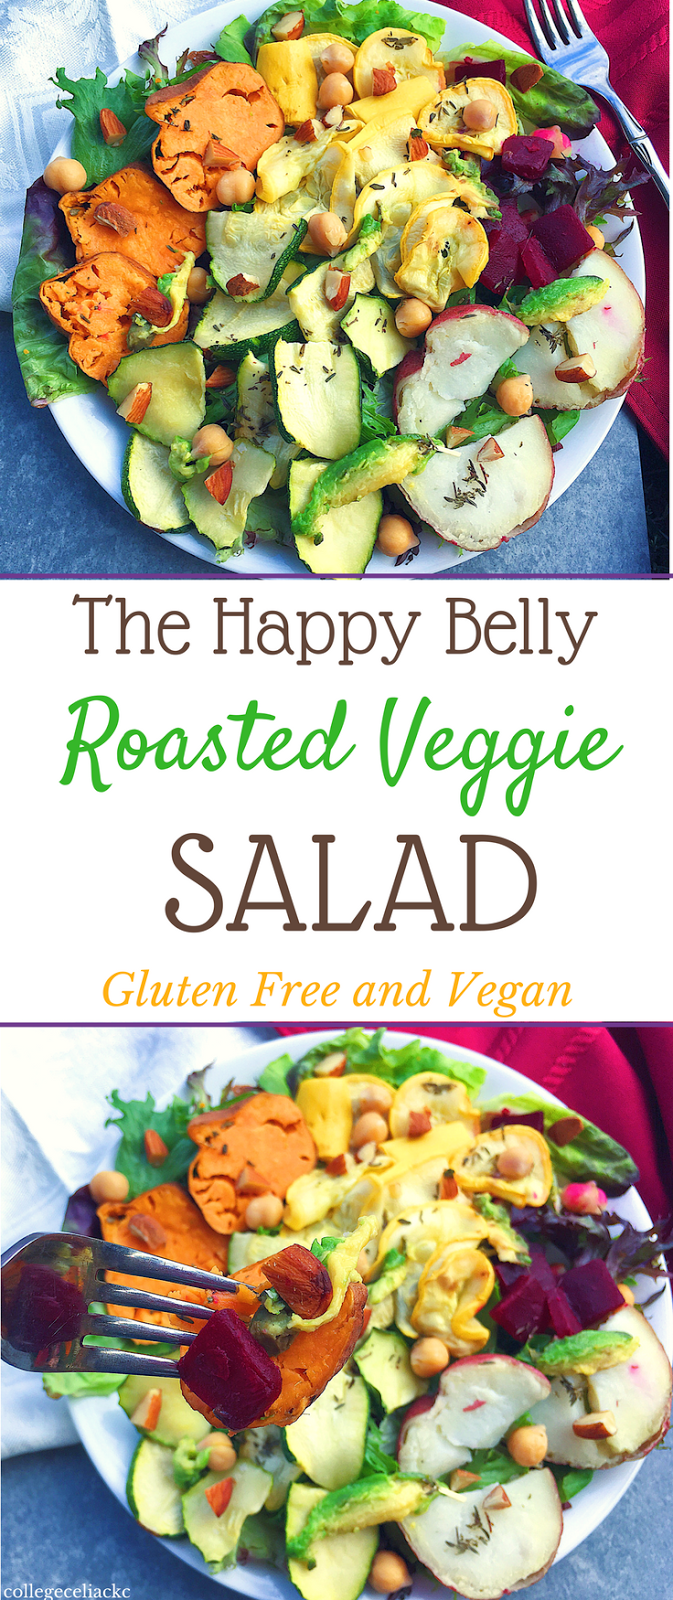 The Happy Belly Roasted Veggie Salad (Gluten Free, Vegan)